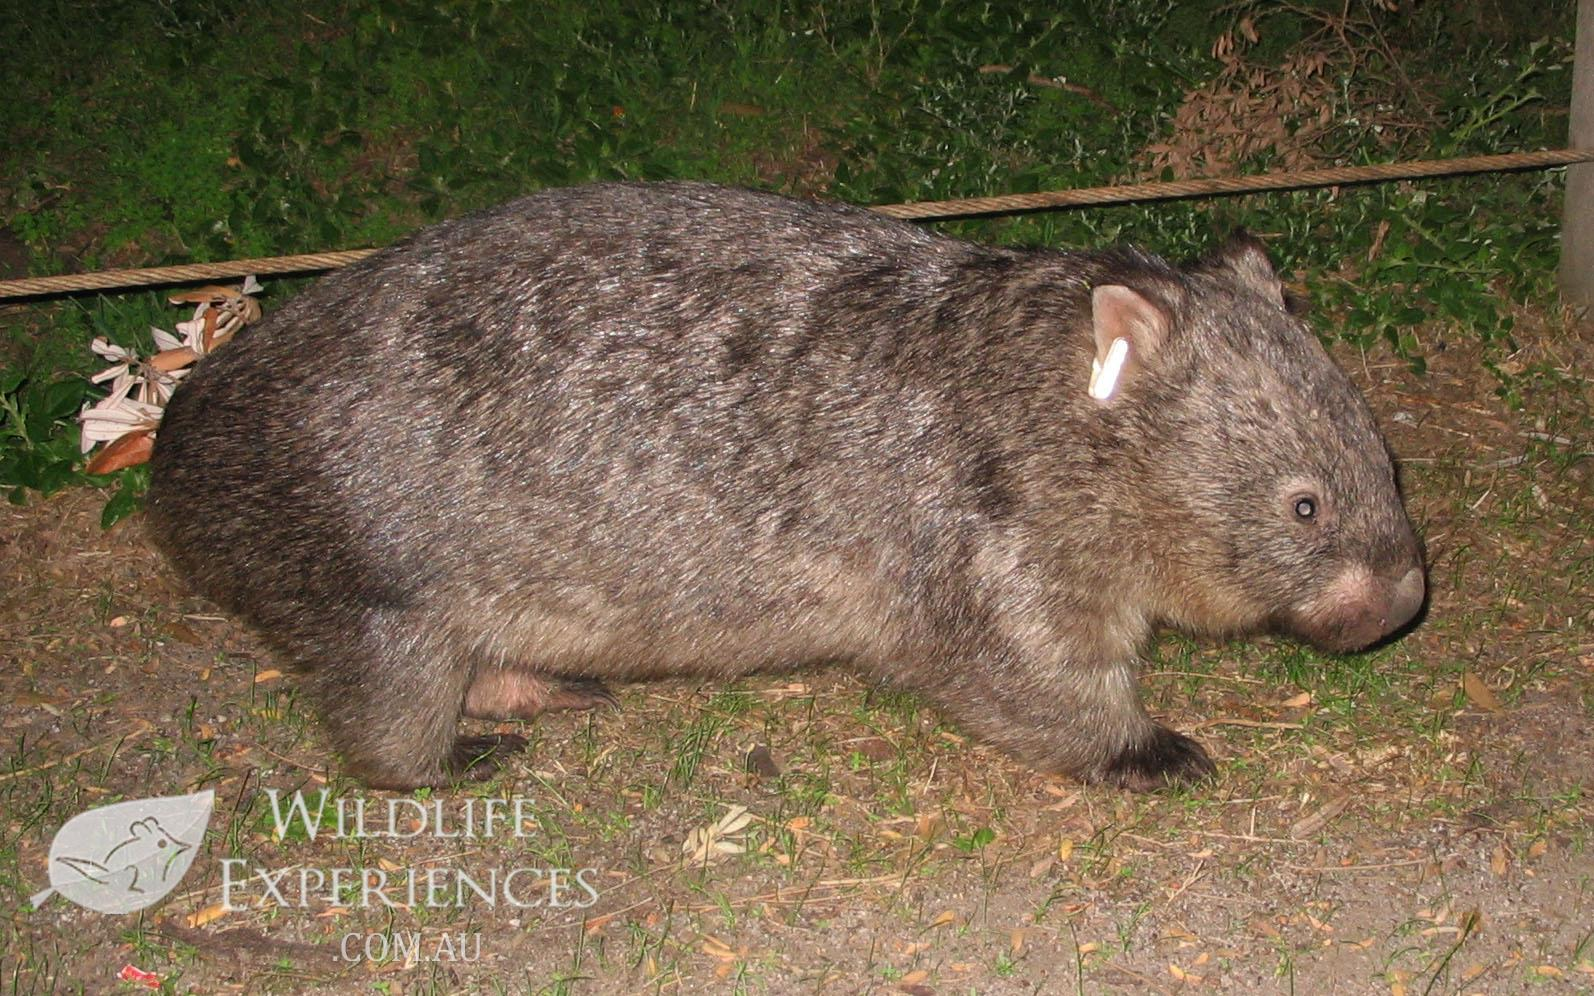 074 Common Wombat Tidal River Wilsons Prom NP Vic 250407